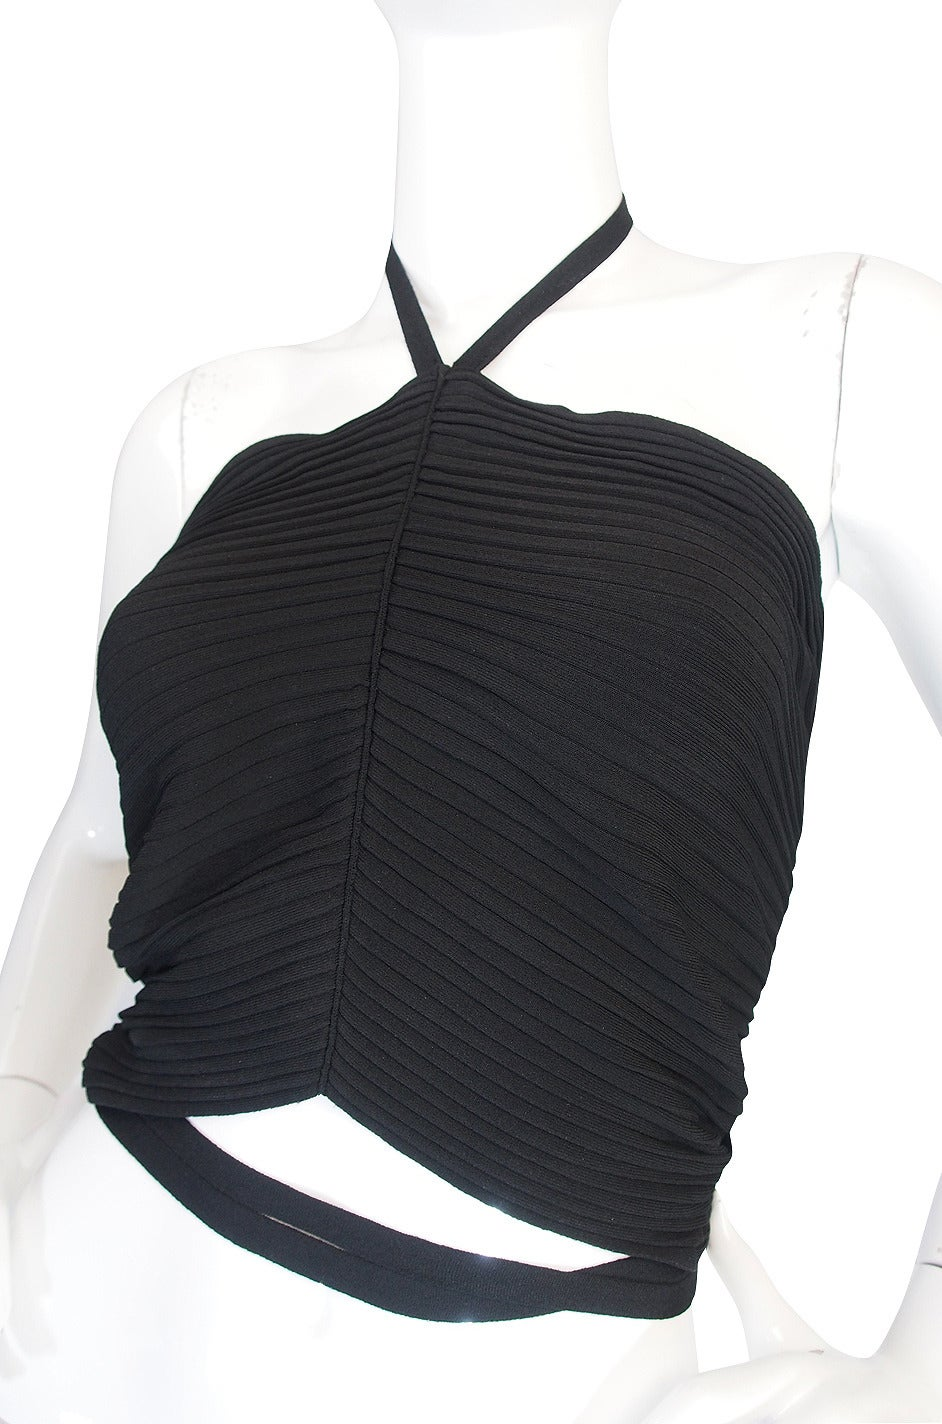 circa 1996 Tom Ford for Gucci Black Halter Knit Top 4